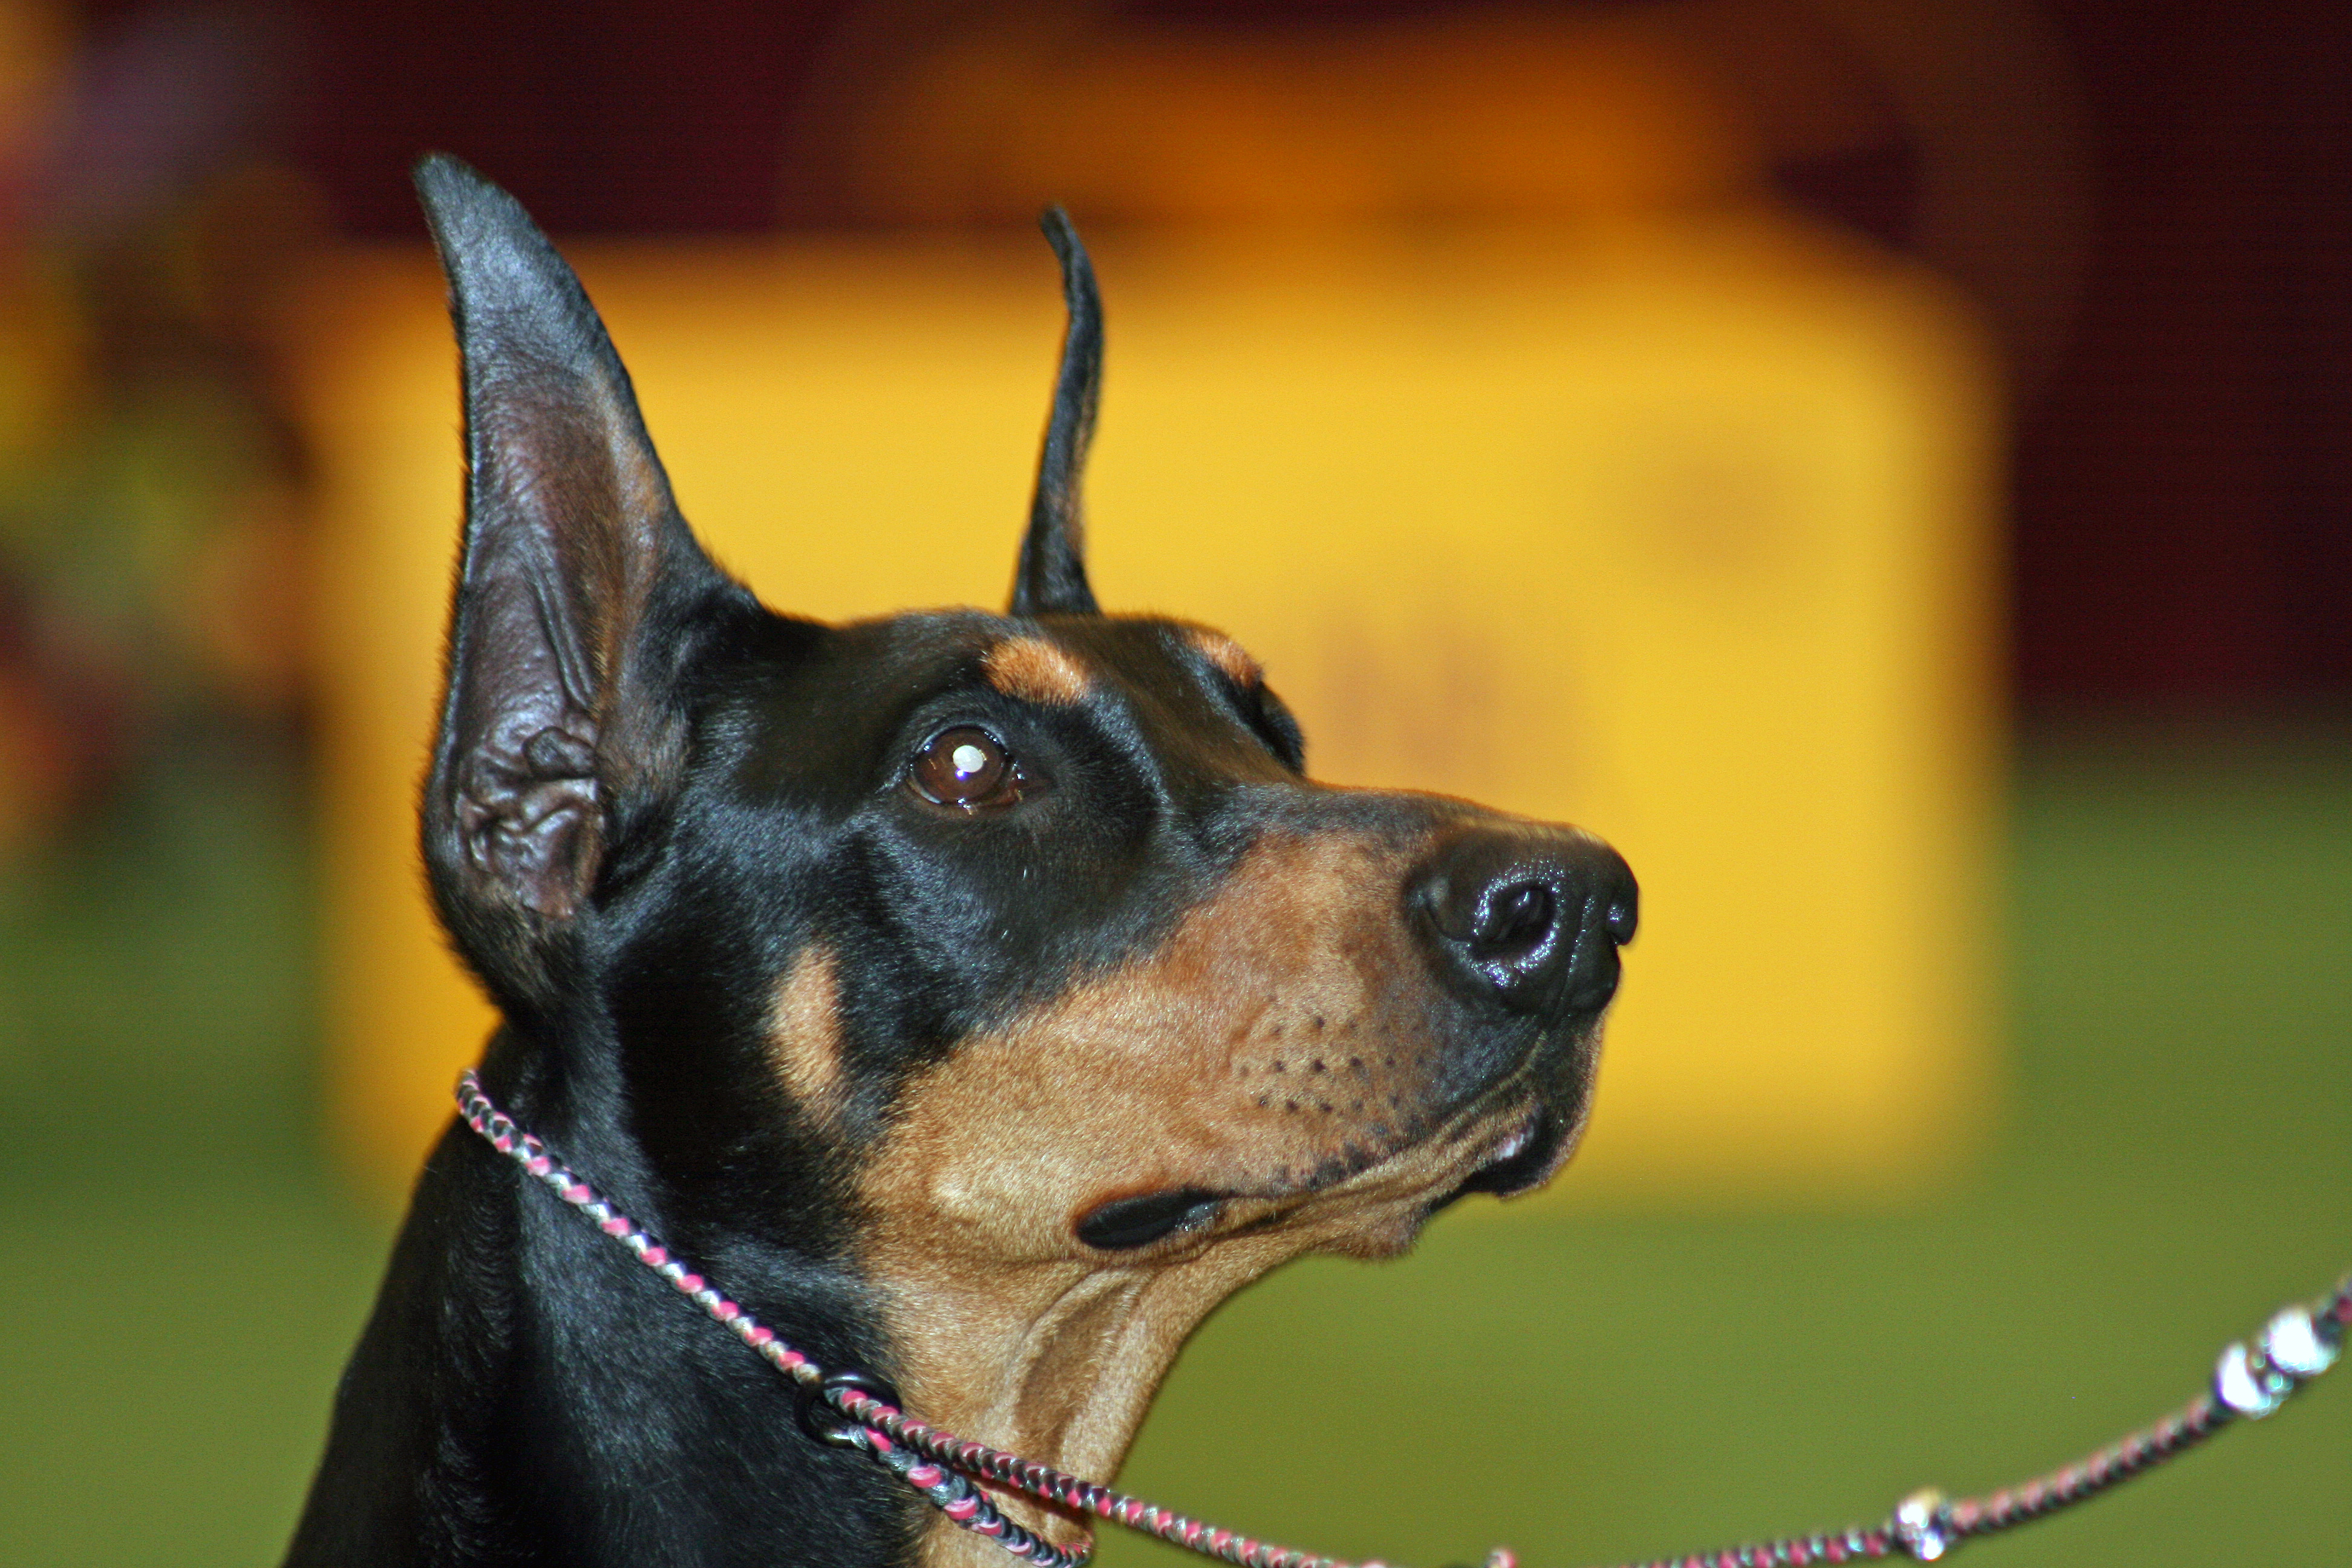 Toy Manchester Terrier Dog: Toy Beautiful Toy Manchester Terrier Dog Breed